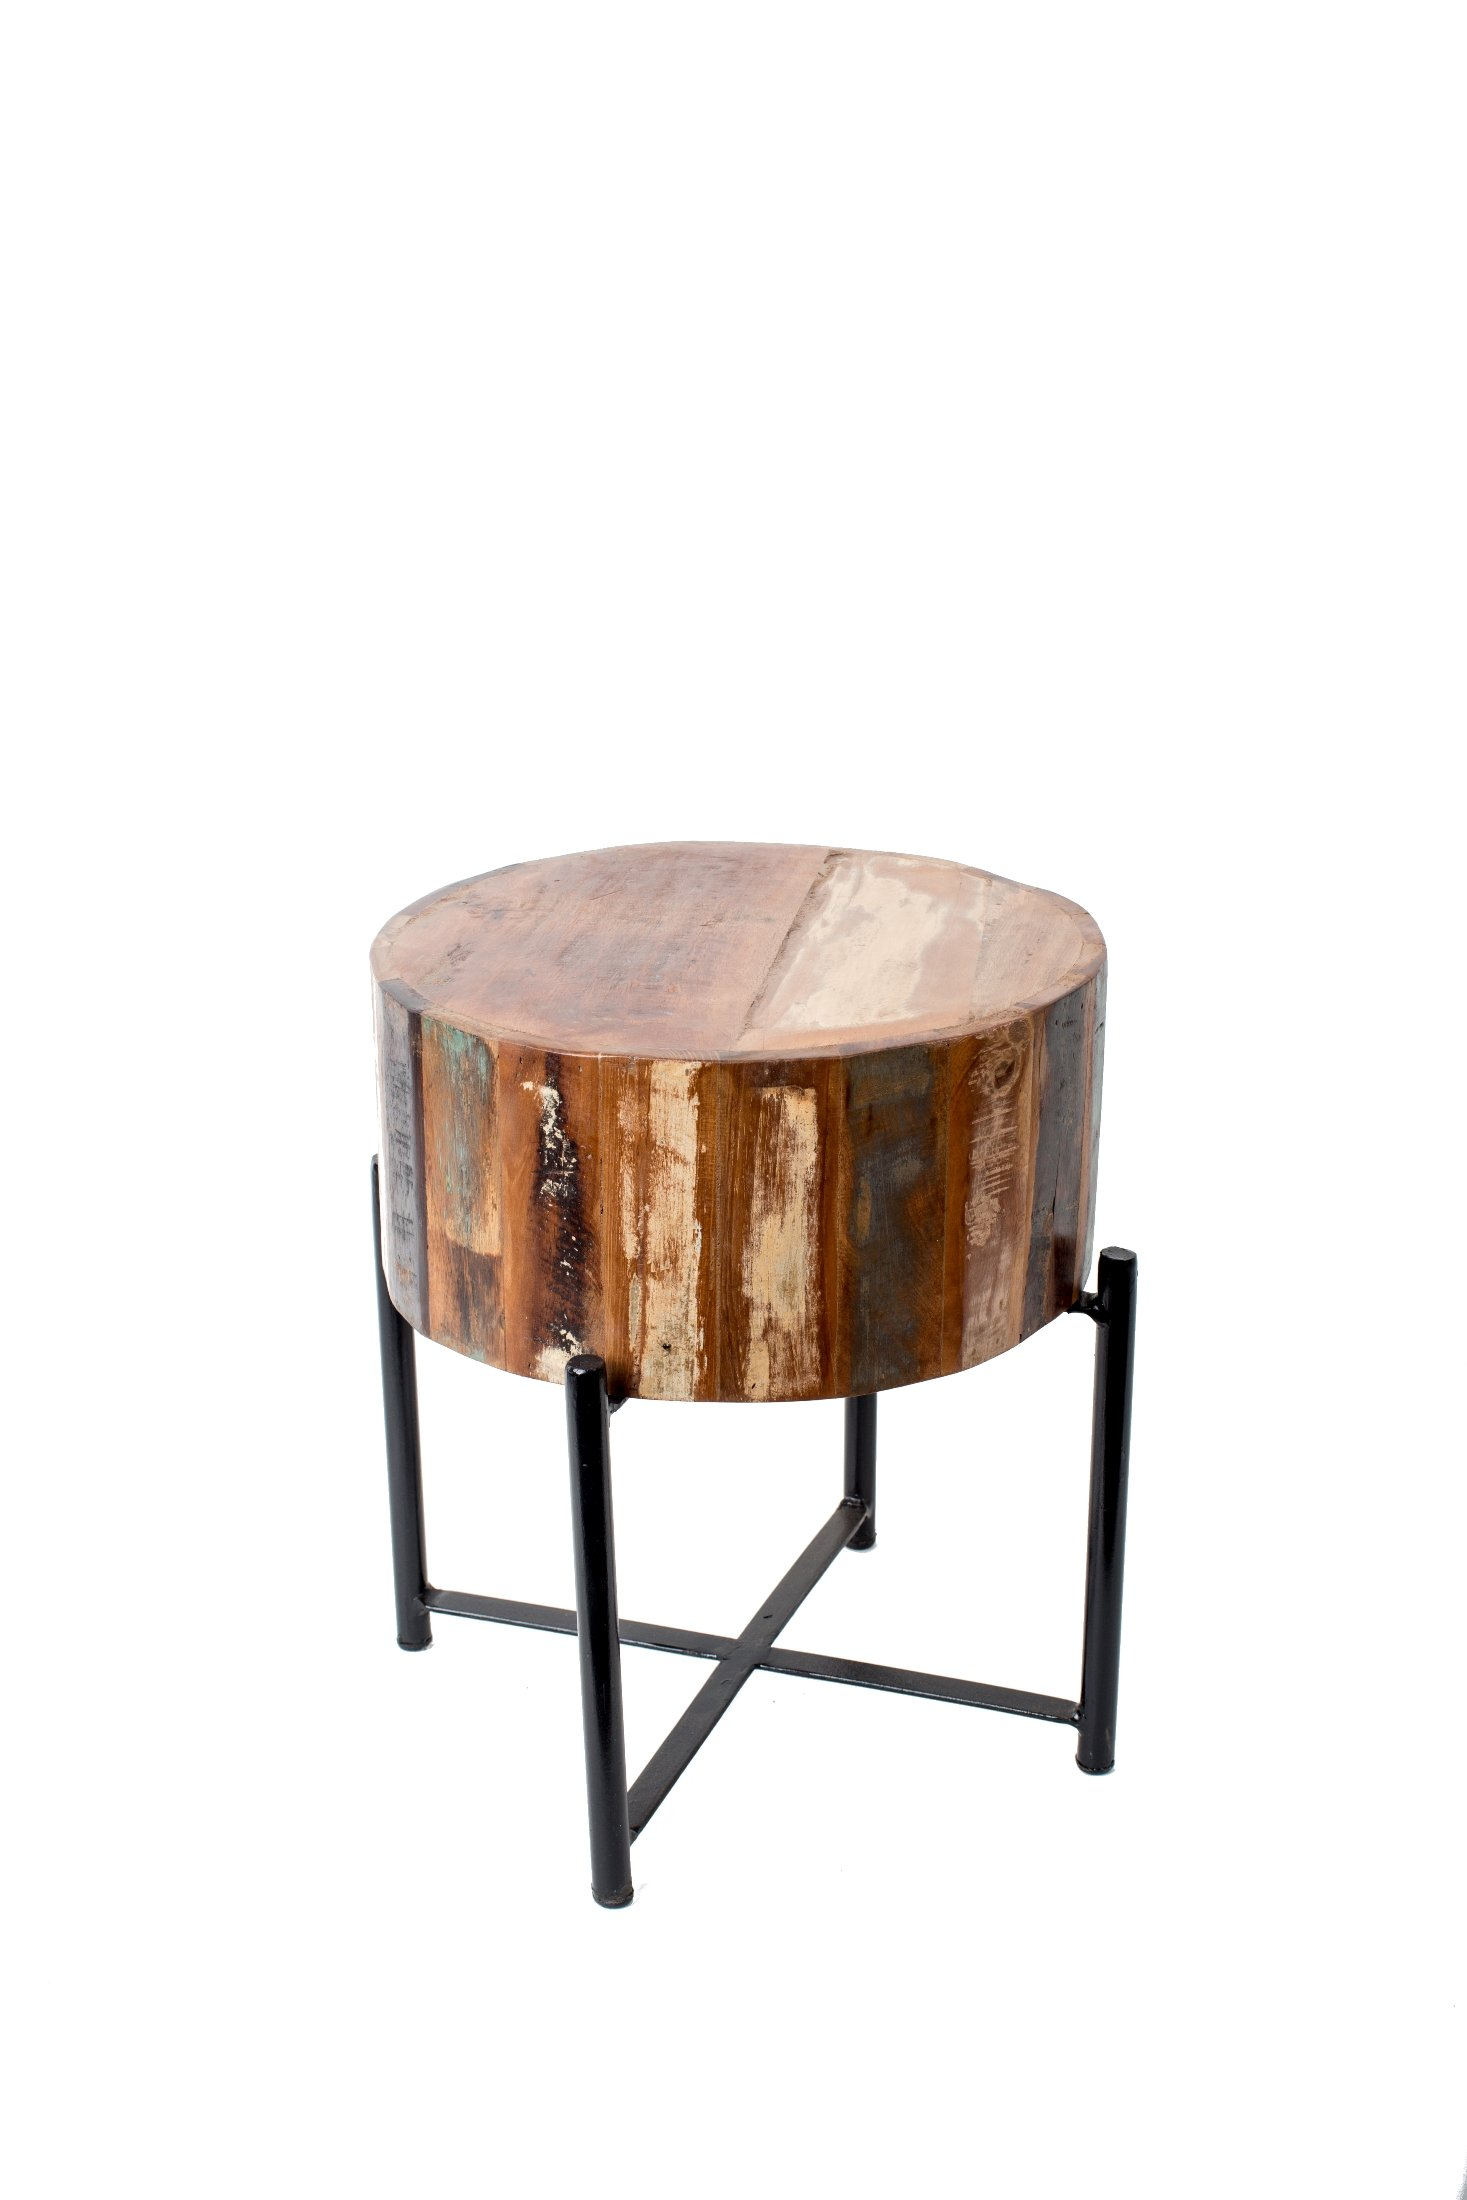 Privilege Wood Plant Stands 15 Inch Diameter Round Reclaimed Wood And Black Metal Stool 16 Inches Tall 16 X 14 X 14 Inches Brown